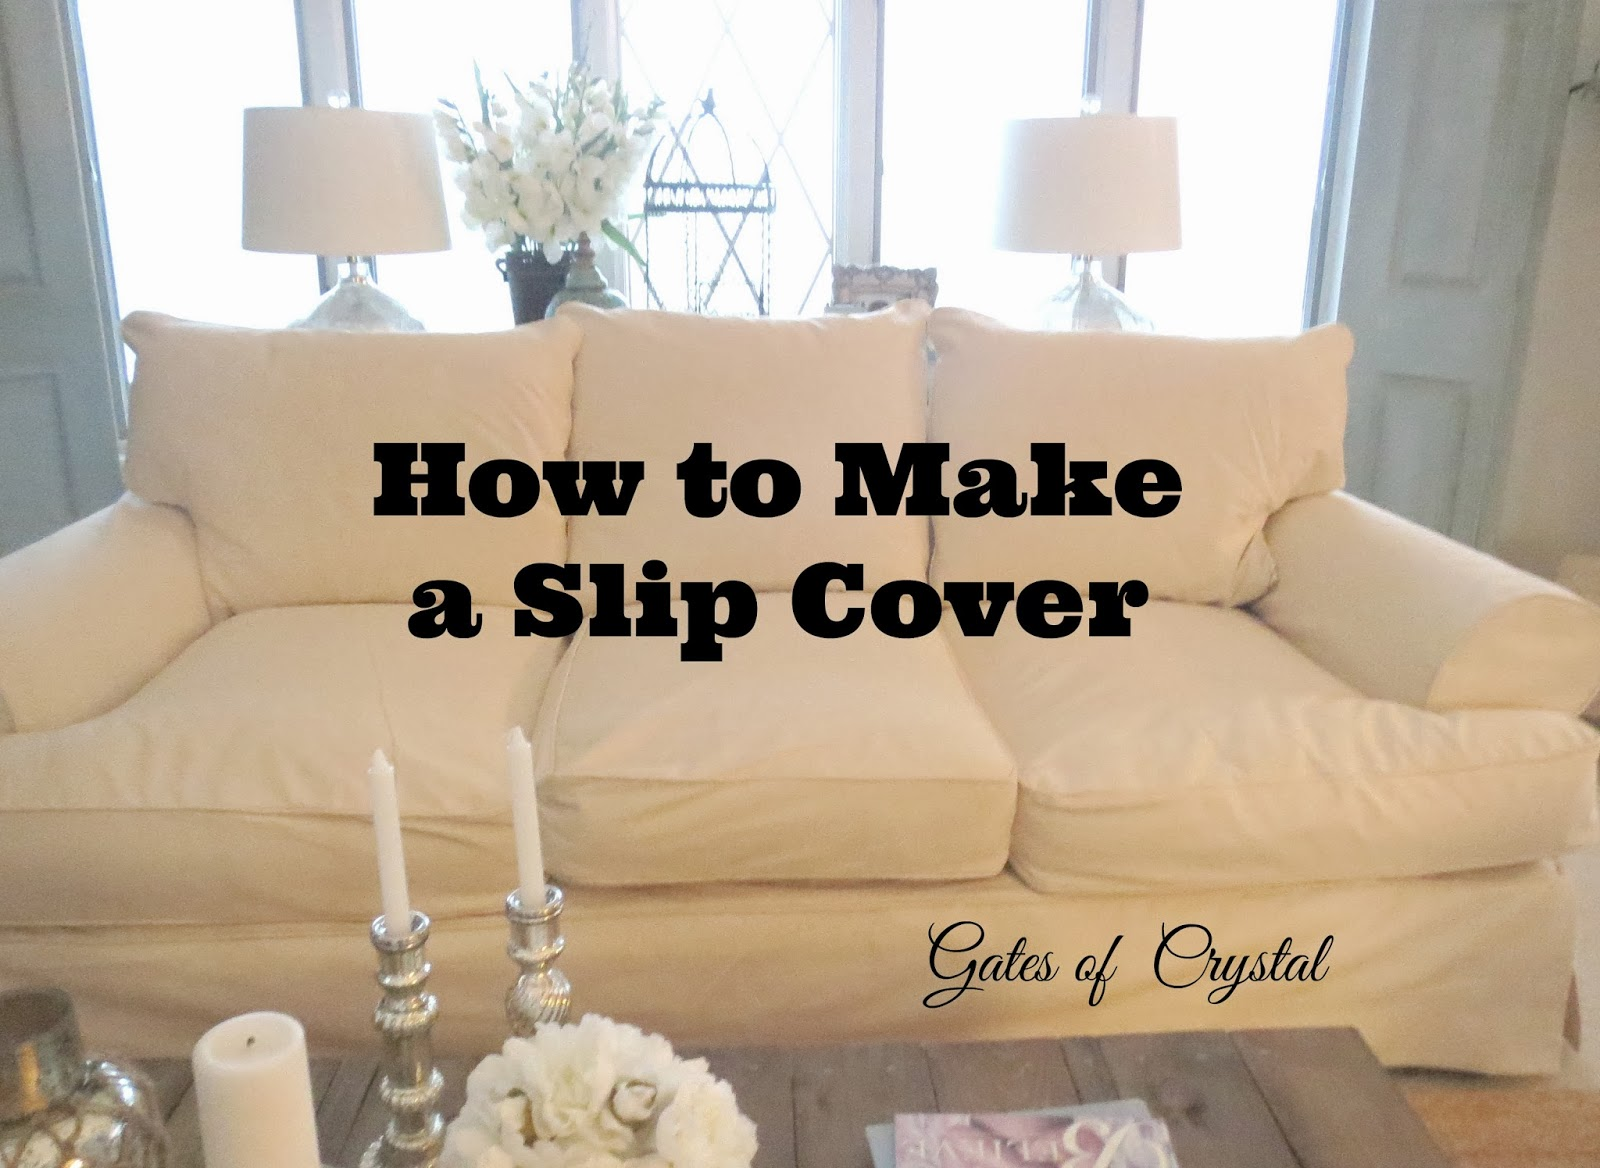 how to make a slipcover for sofa chair two seater small gates of crystal making slip cover part three